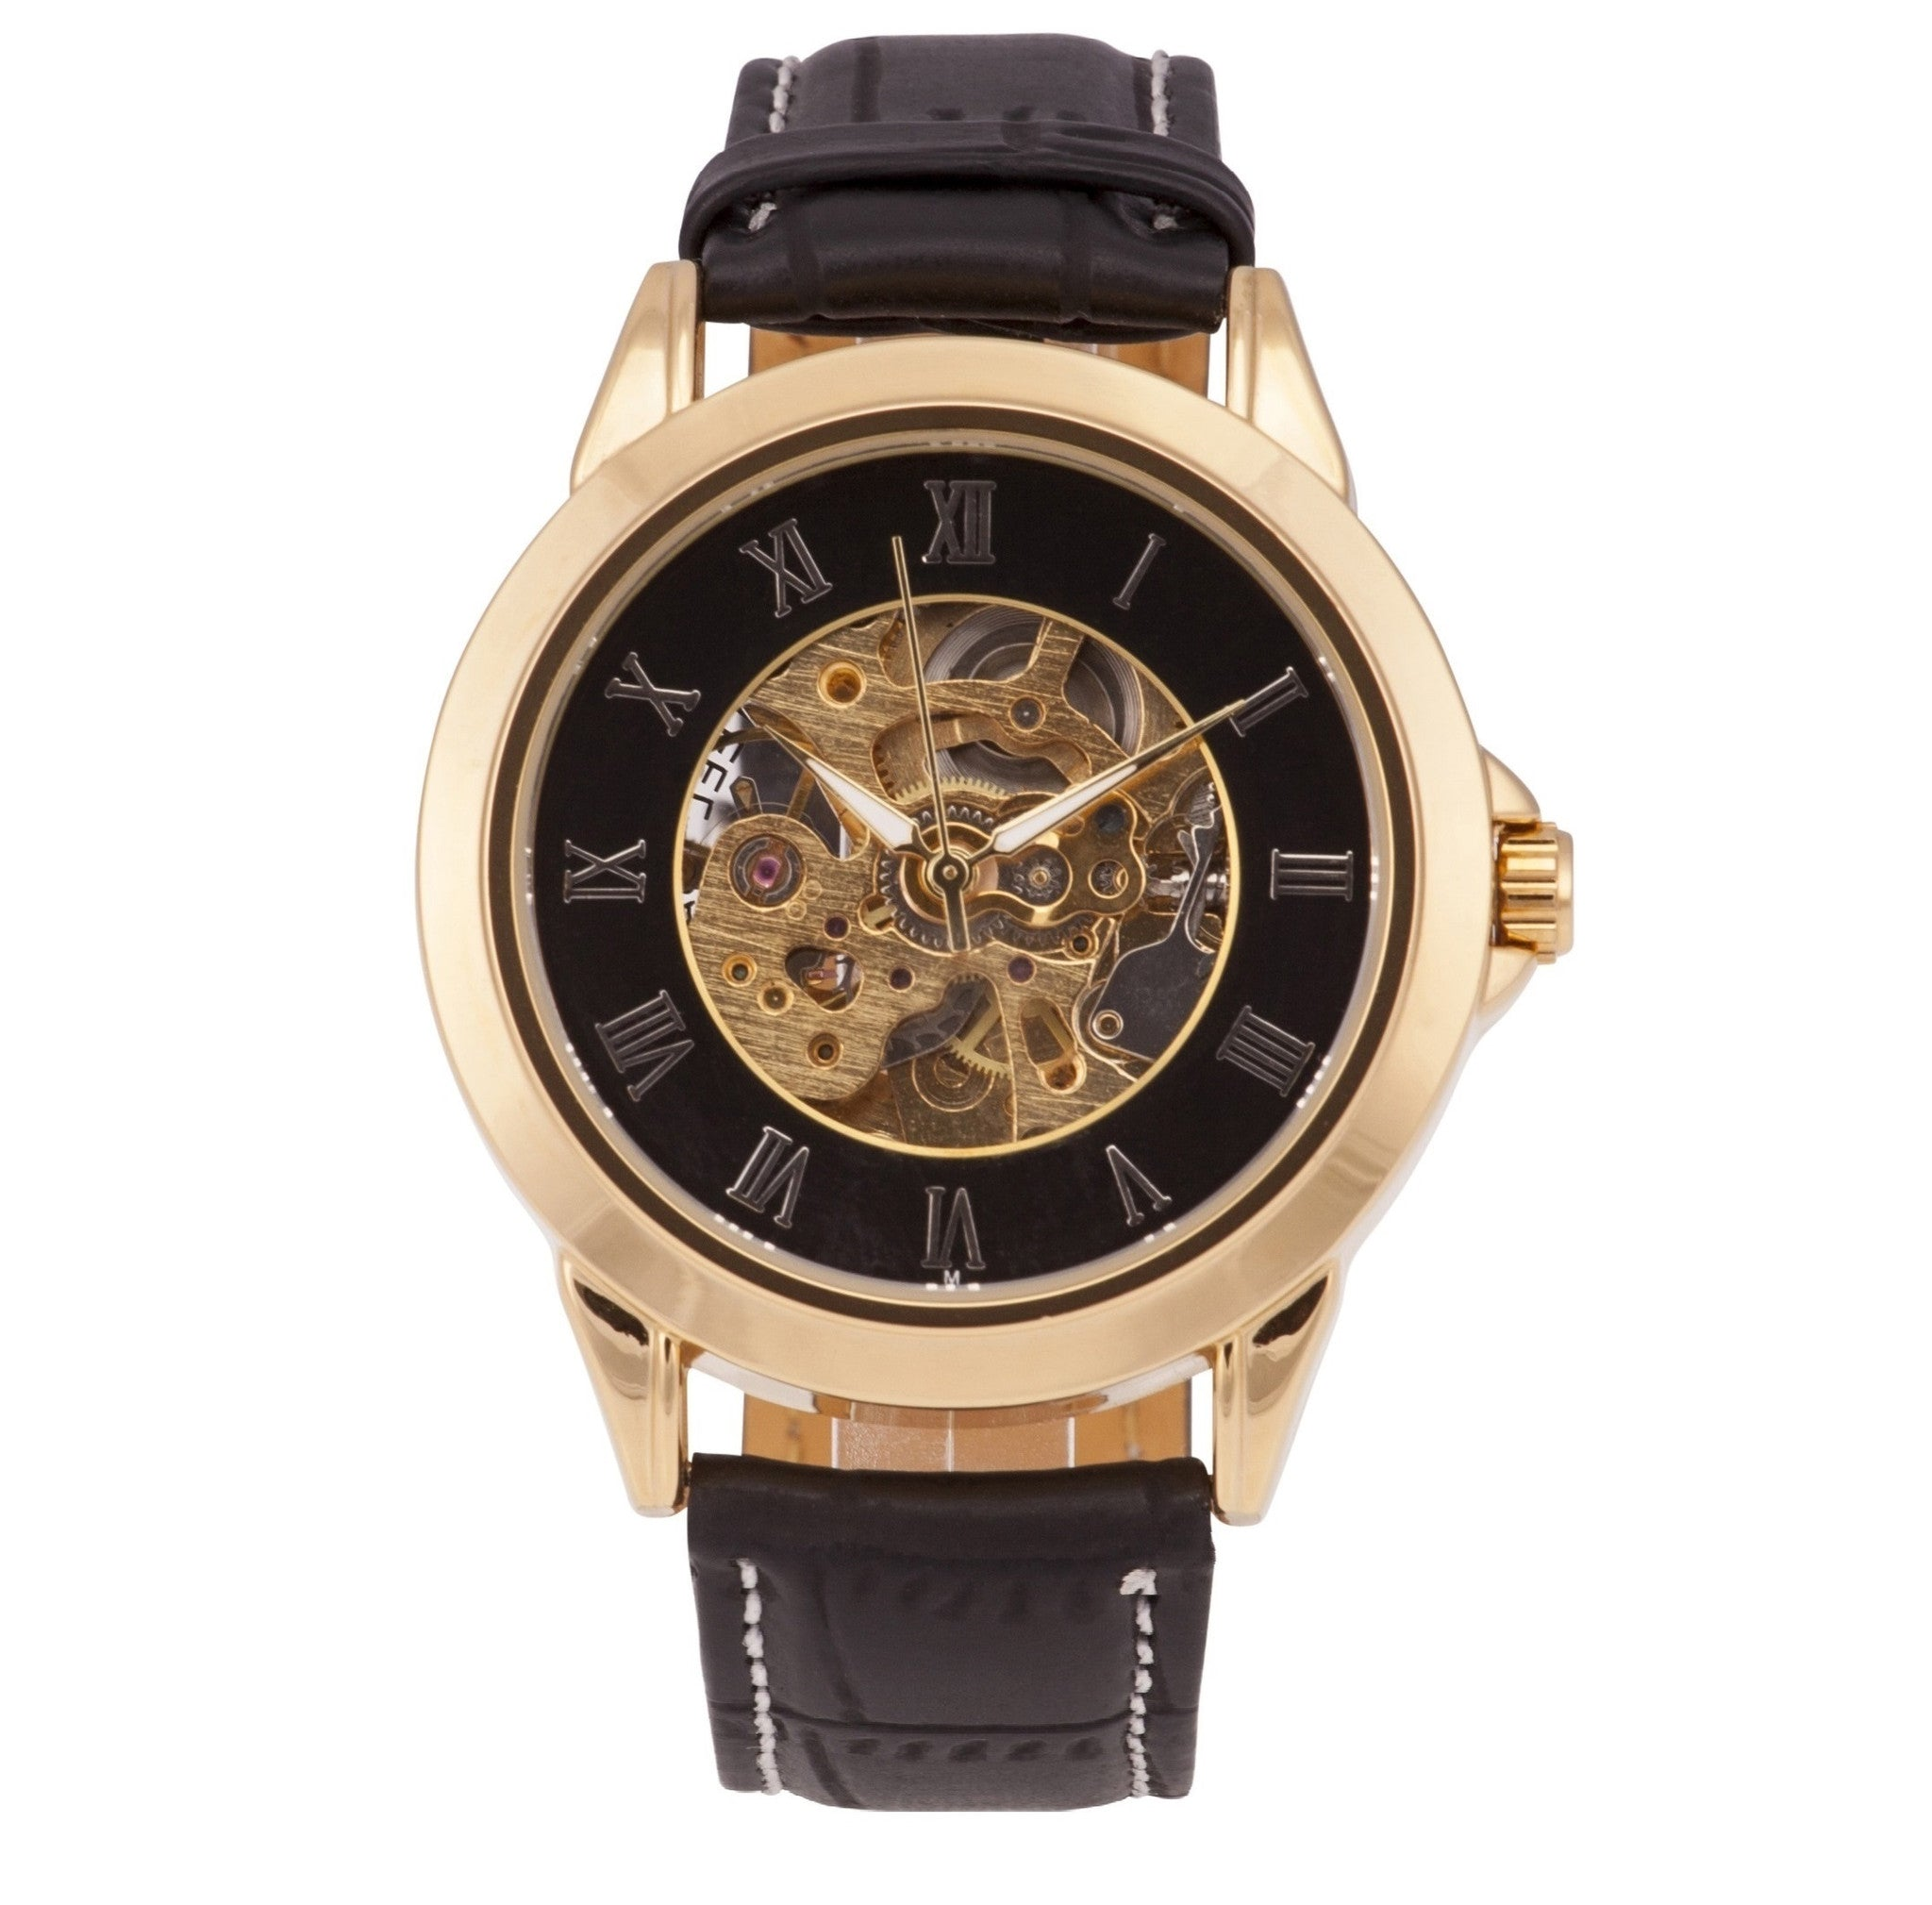 Belgravia Skeleton Watch - Sterling Timepieces - 1